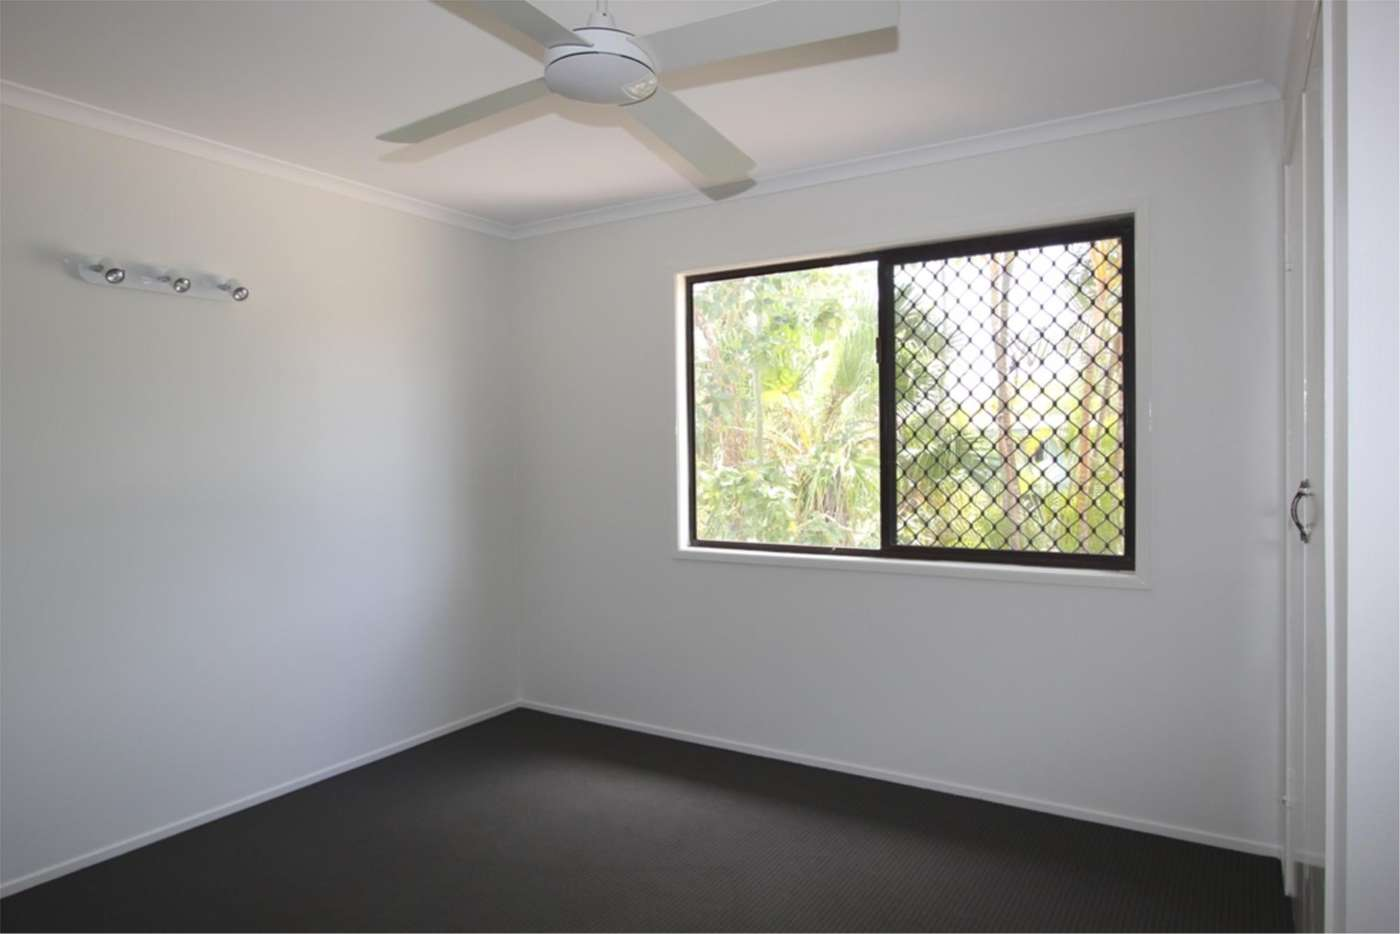 Sixth view of Homely house listing, 21 Olympia St, Marsden QLD 4132